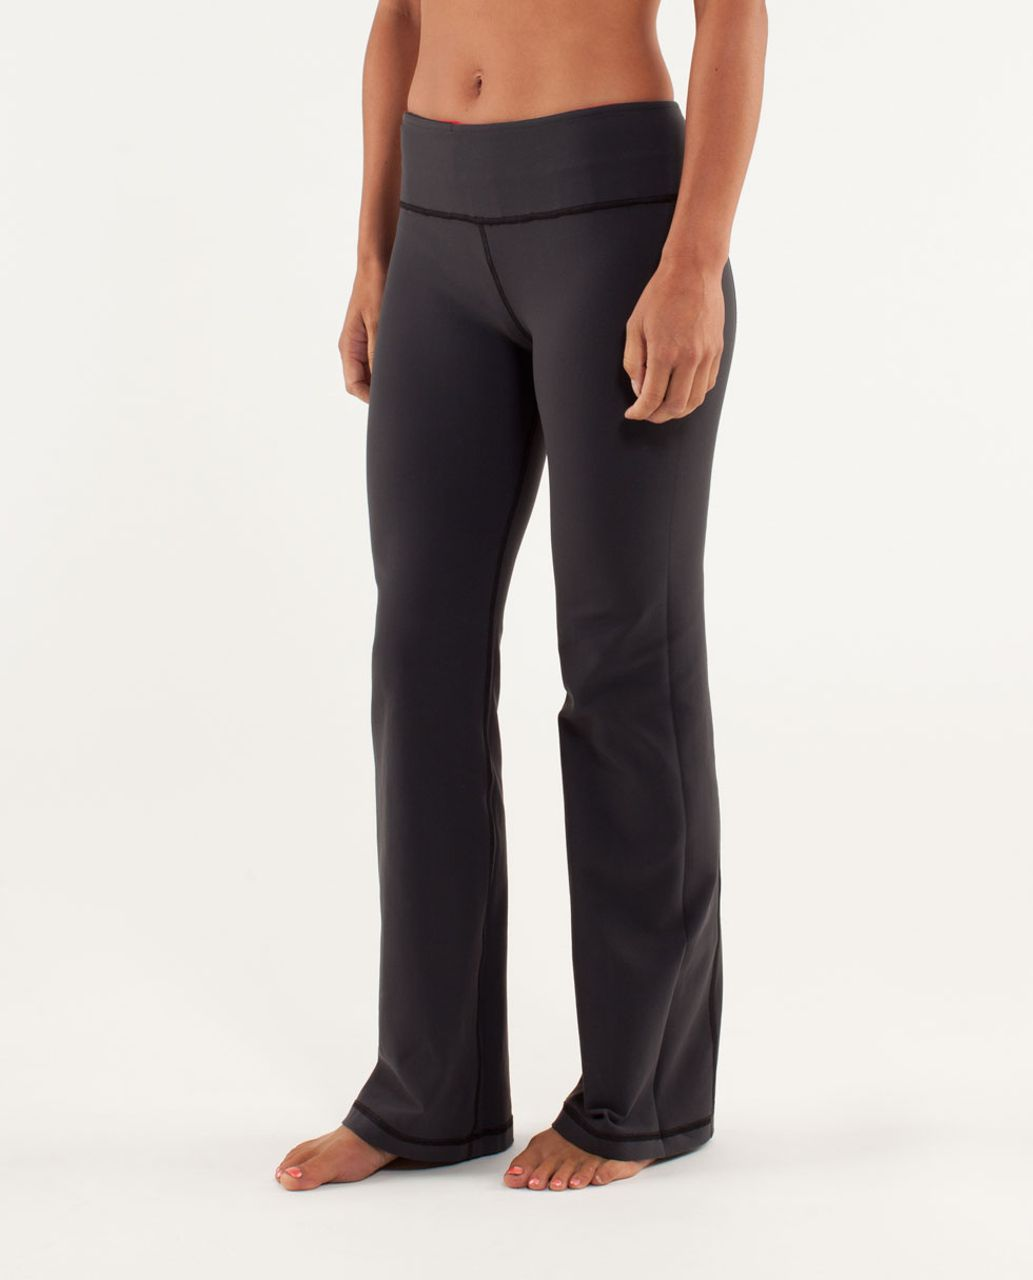 Lululemon Groove Pant (Tall) - Deep Coal / Currant / Fall 12 Quilt 14